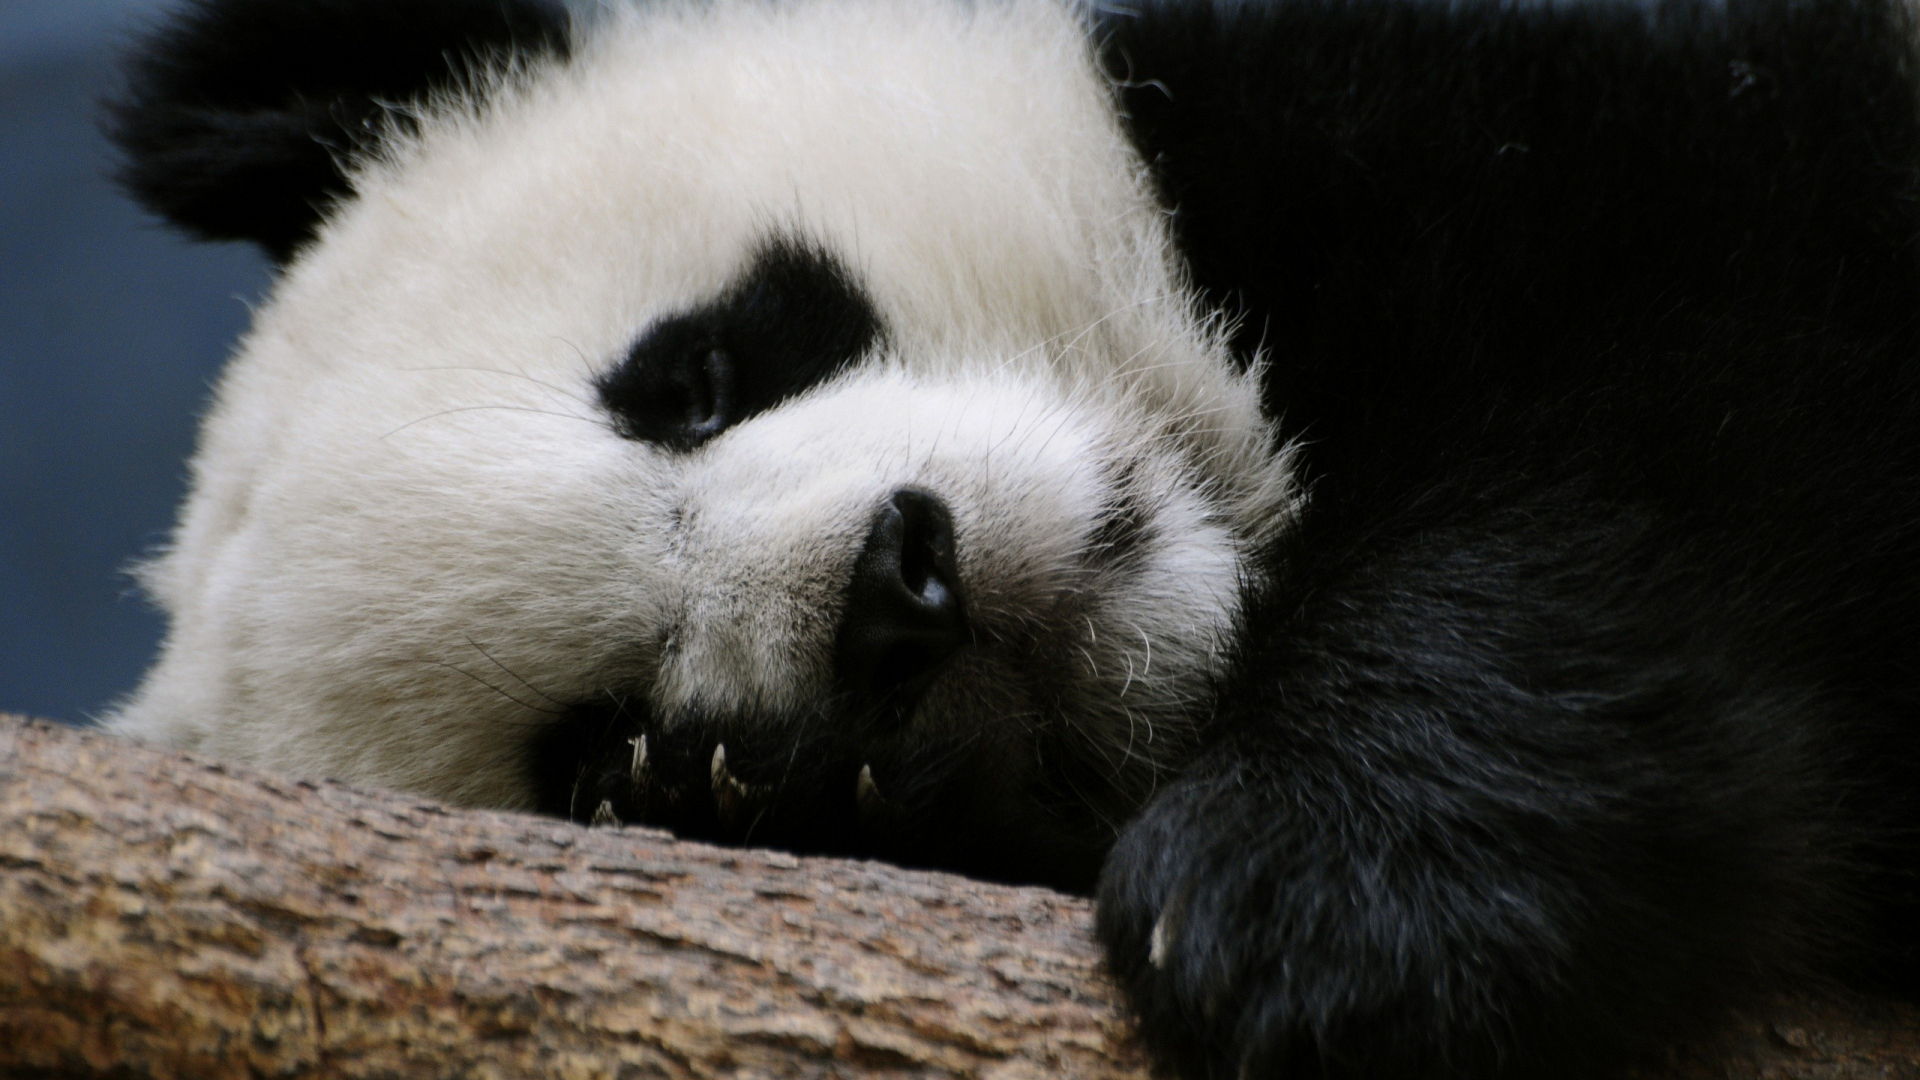 Free Download Panda Che Dorme Sfondi Animali Hd Solosfondicom